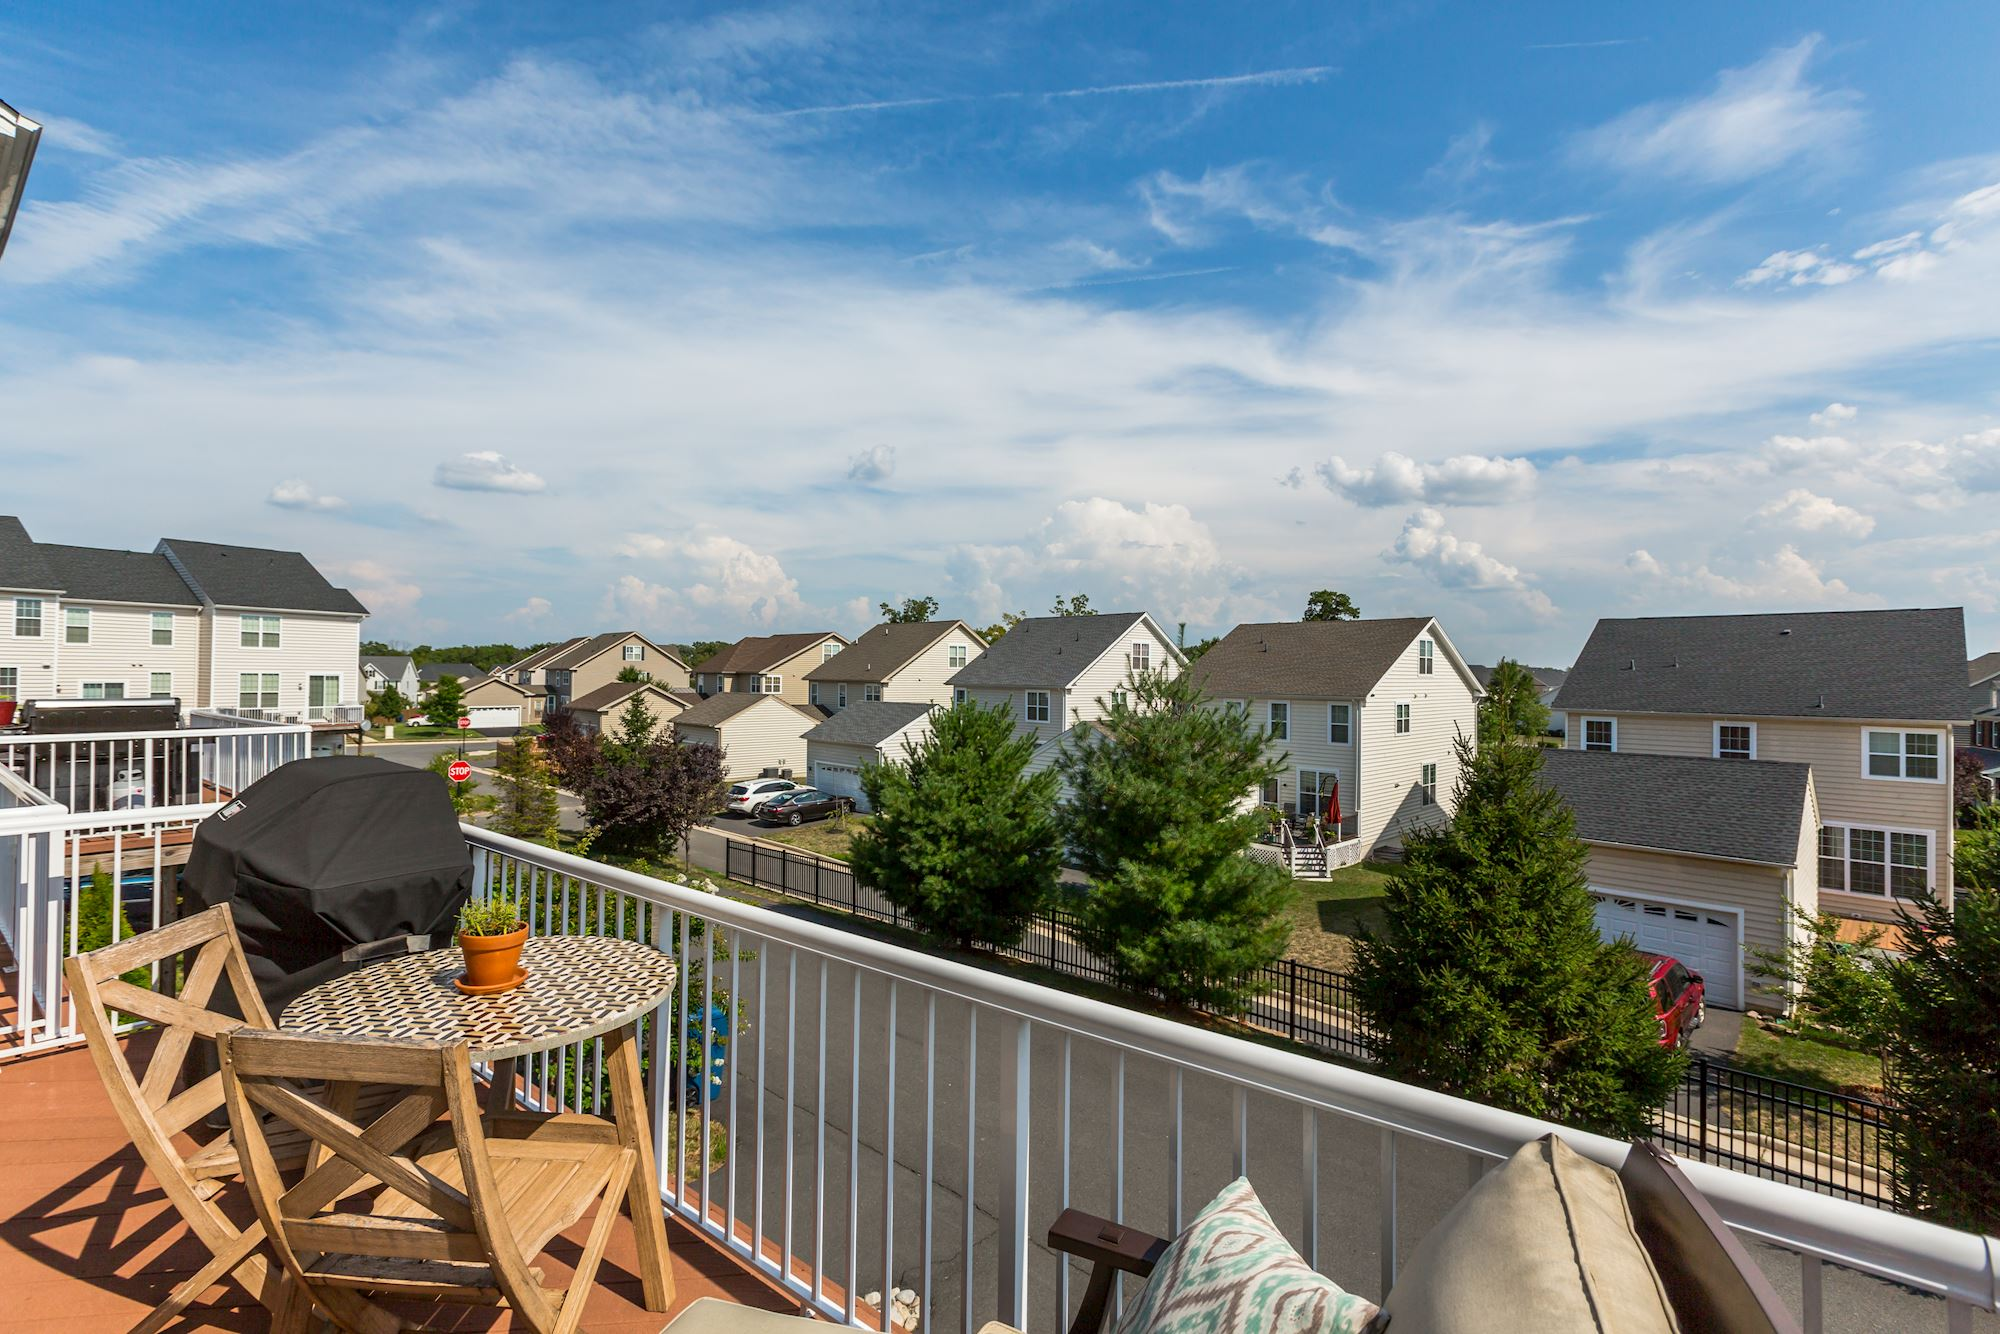 NEW LISTING: 3 BD Gorgeous Townhome in Ashburn, VA